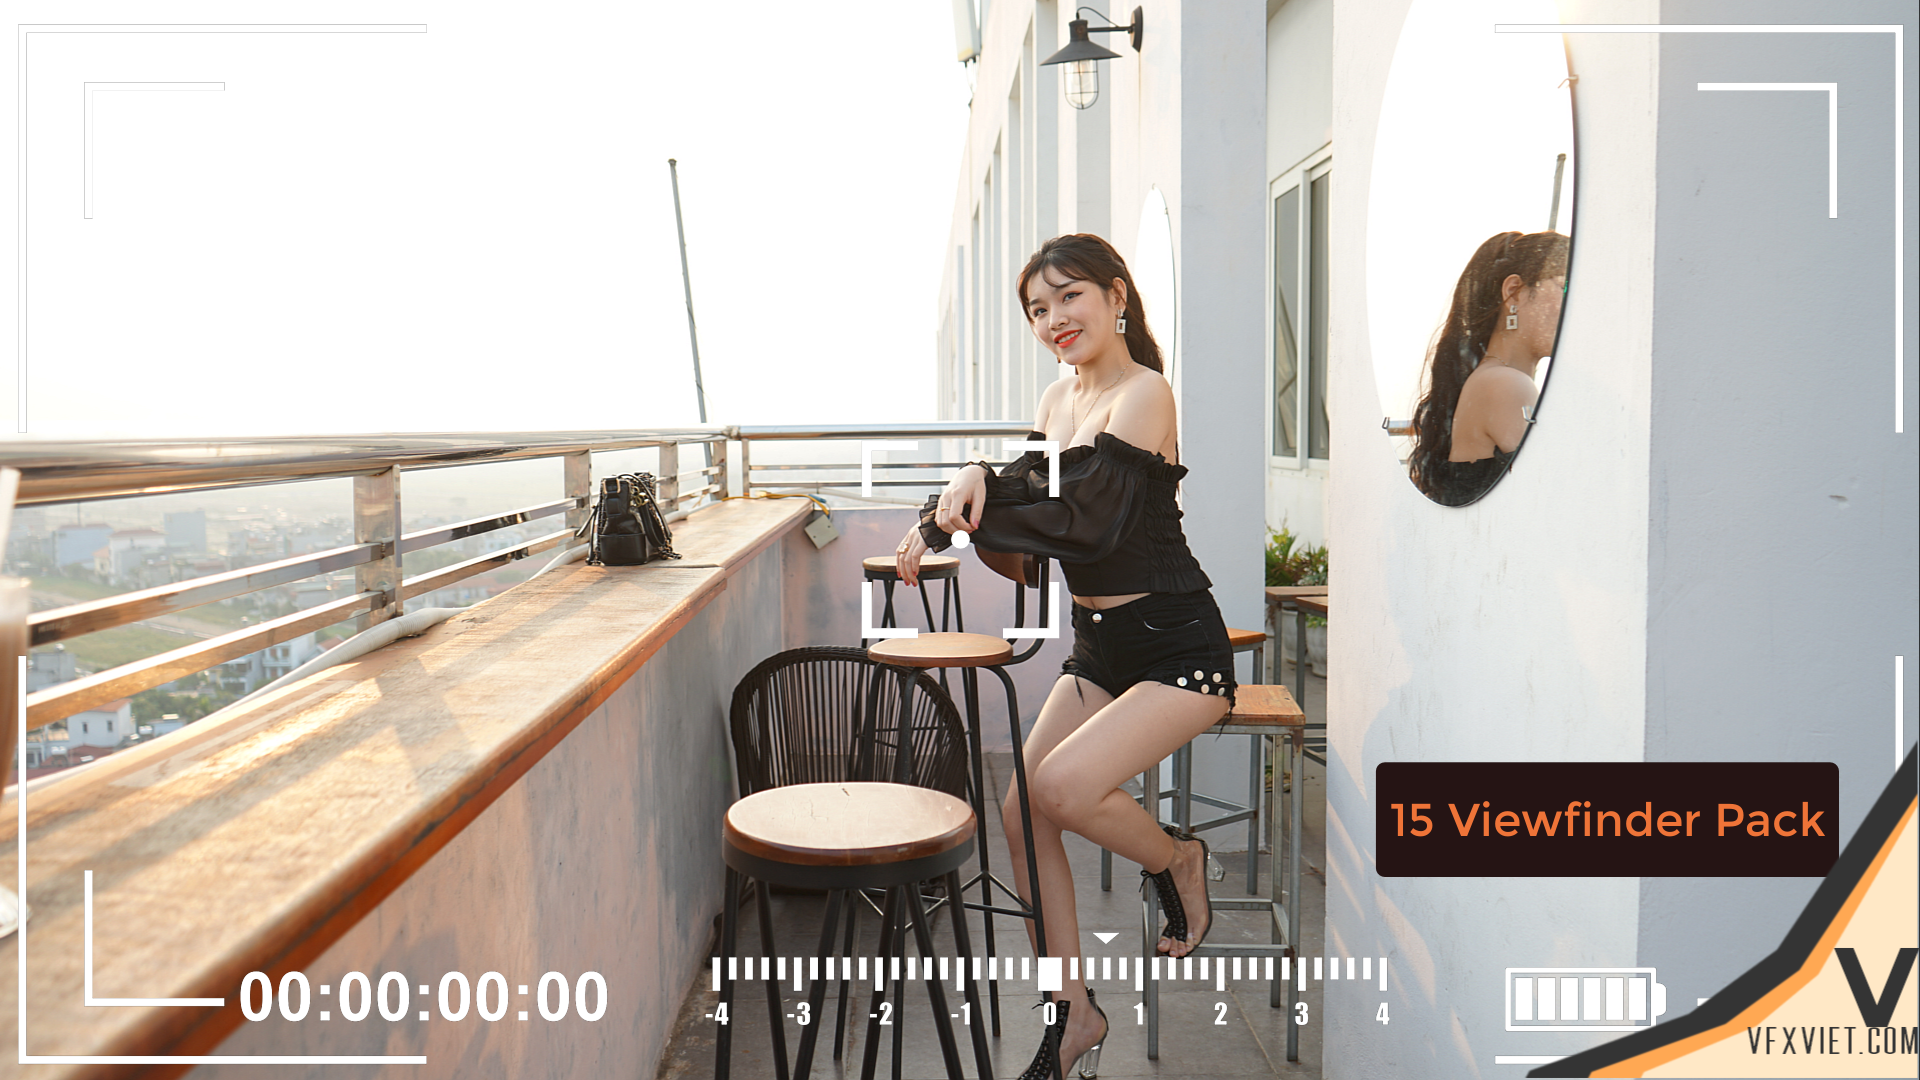 Viewfinder Pack 15 Footage Vfxviet